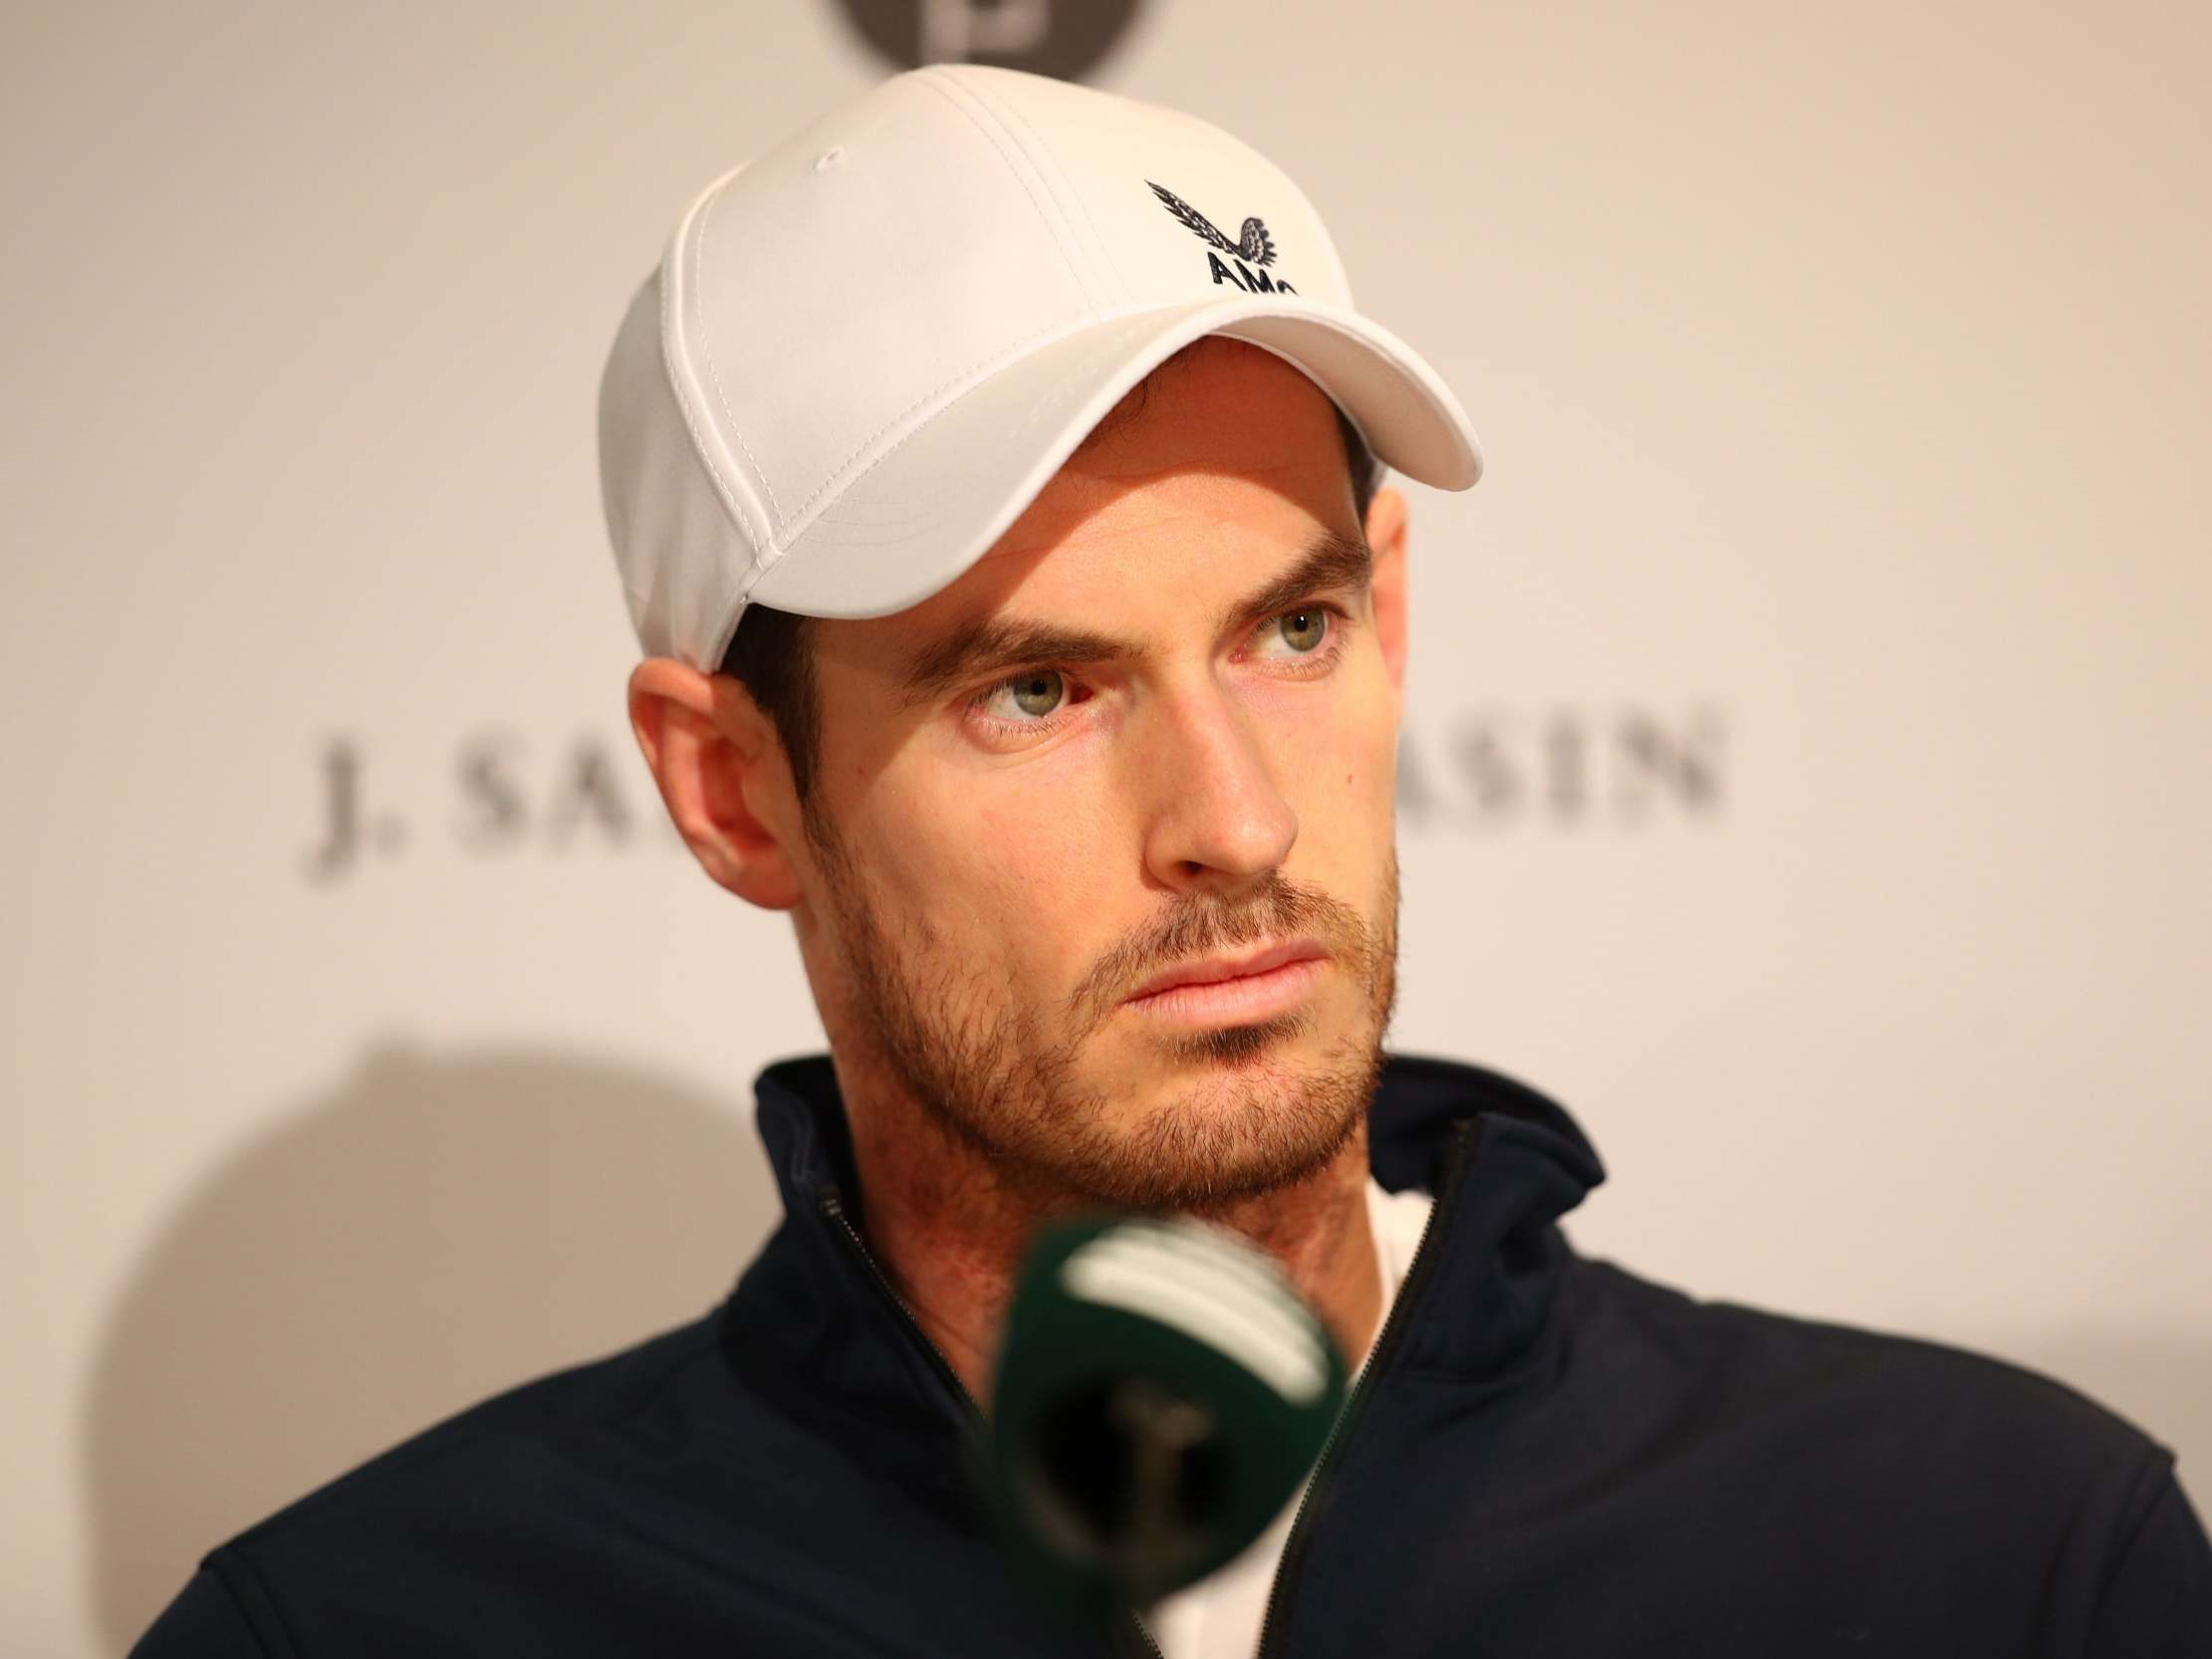 Tennis return is 'not the most important thing' says Andy Murray